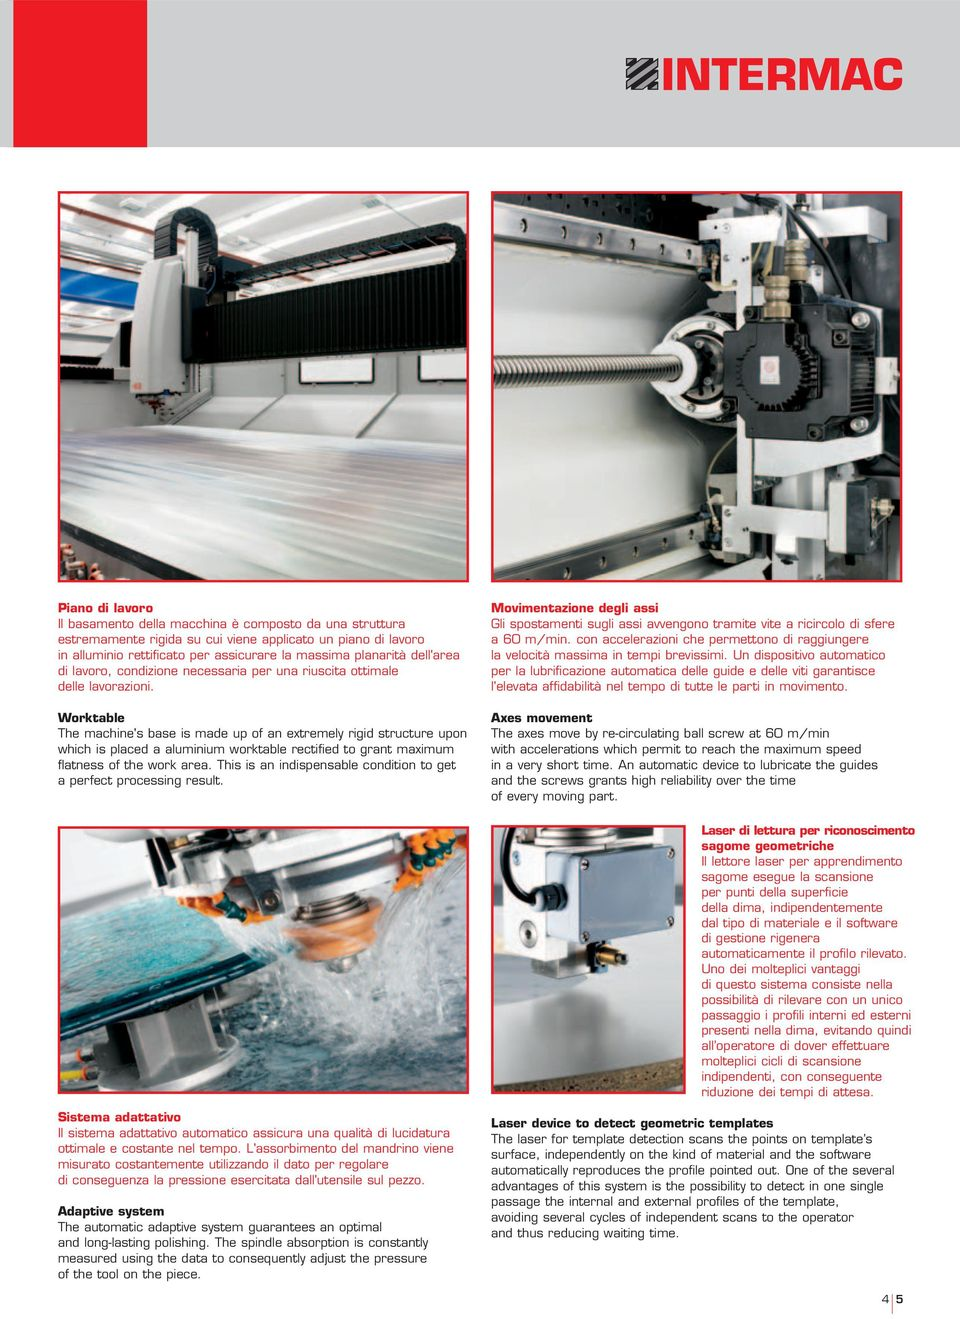 Worktable The machine's base is made up of an extremely rigid structure upon which is placed a aluminium worktable rectified to grant maximum flatness of the work area.